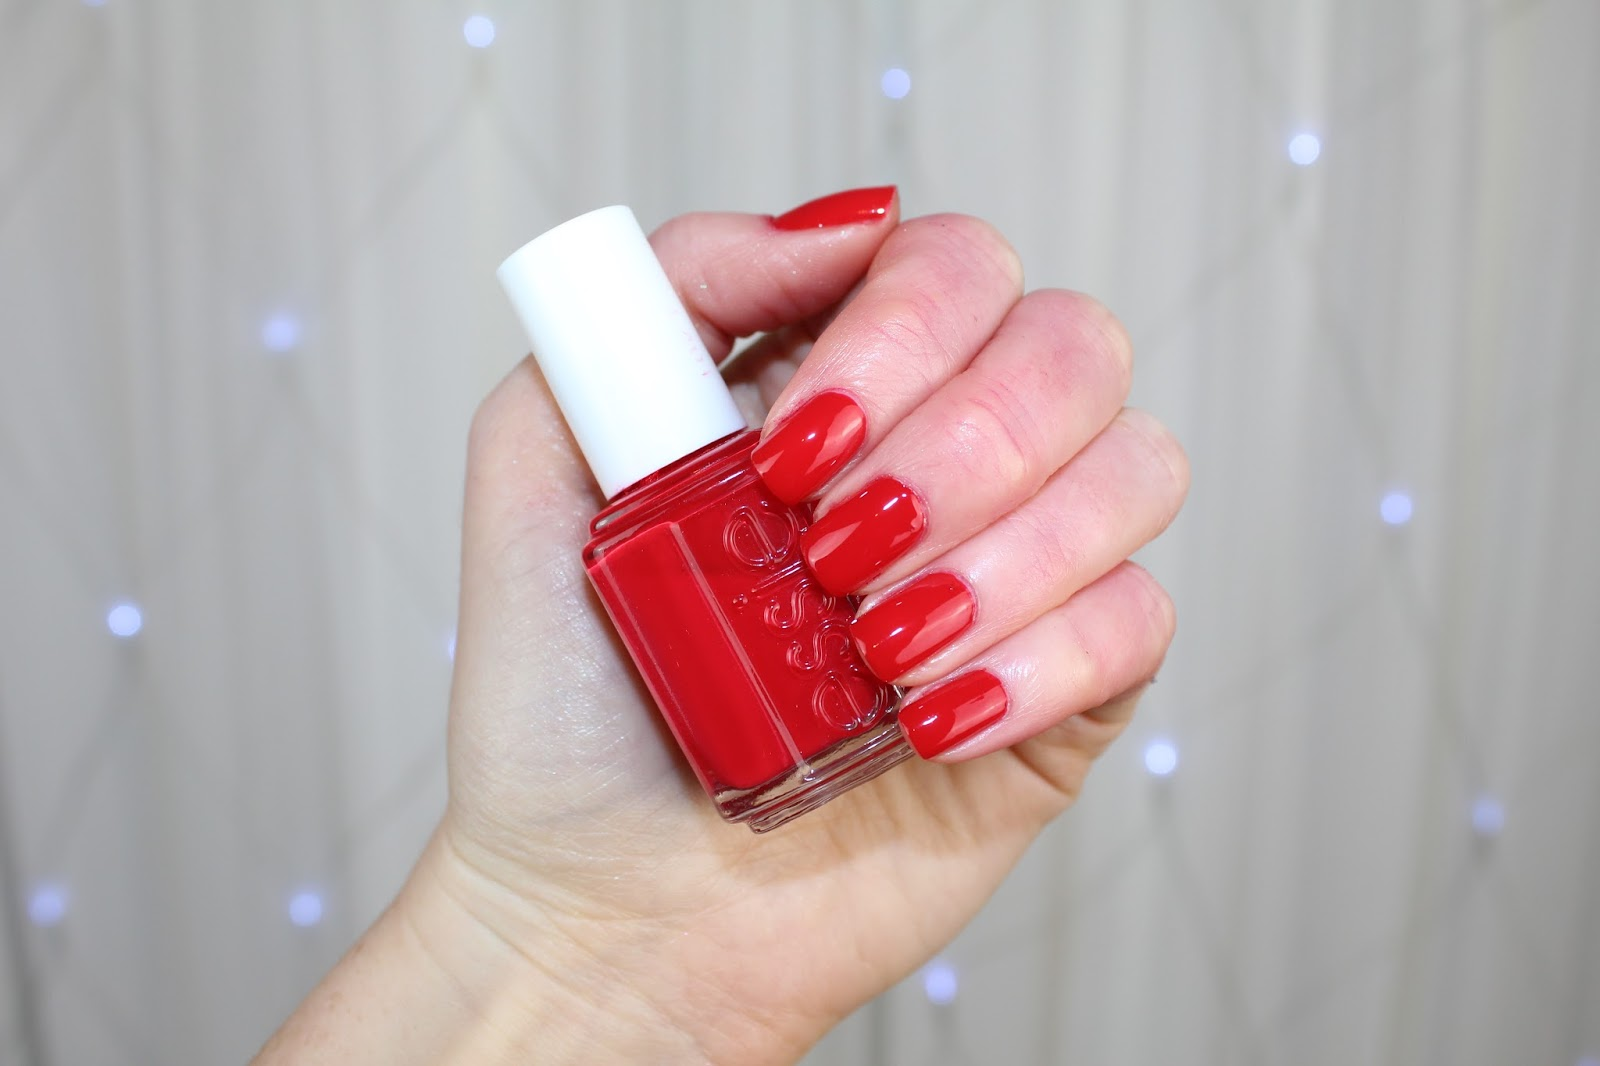 Top 10 Autumn/Winter Nail Polish Picks and Trends 2017 | Pink ...